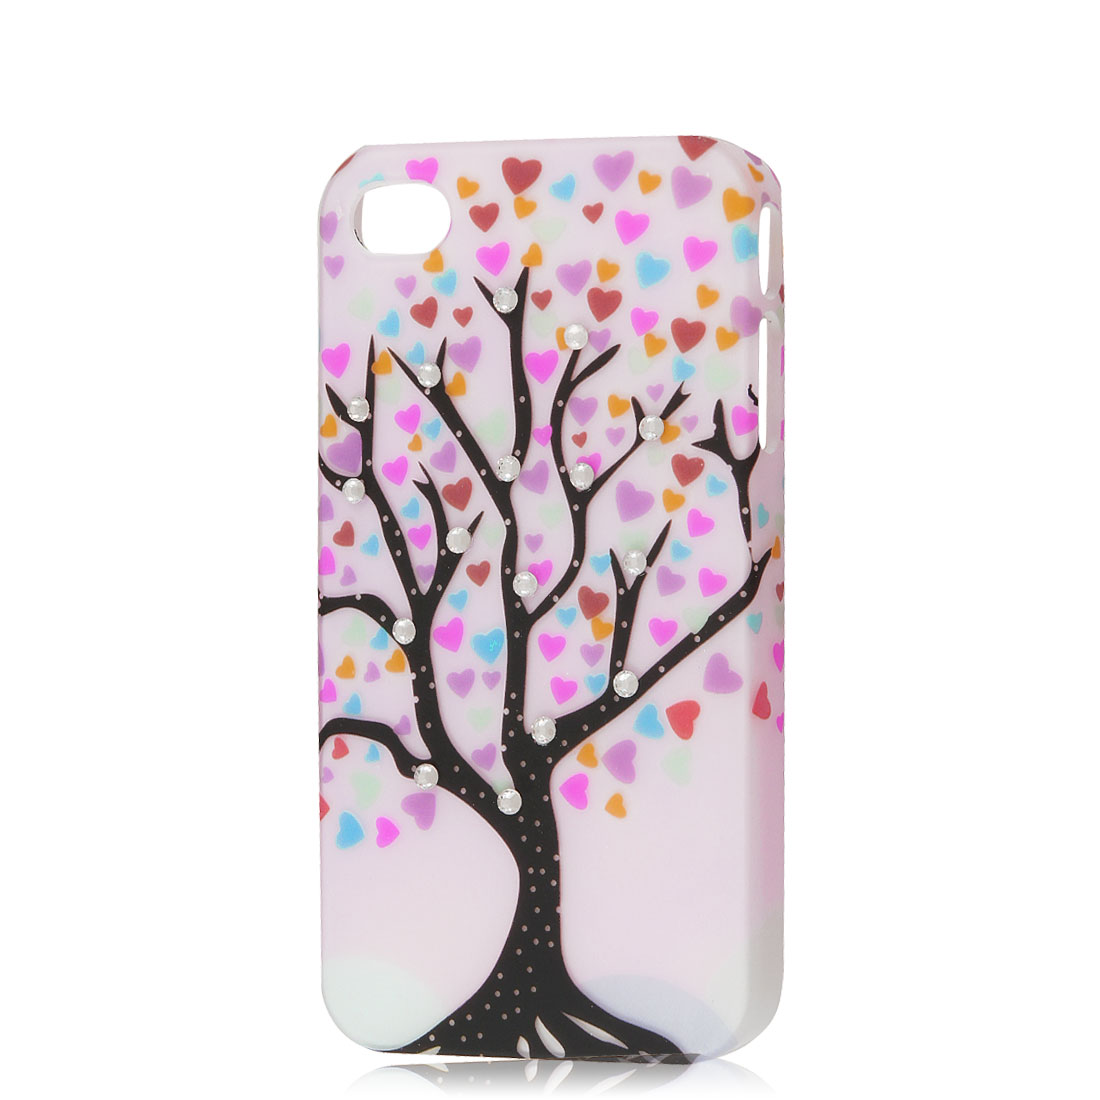 Light Pink Rhinestone Tree Heart Design Hard Back Case Cover Skin for iPhone 4 4G